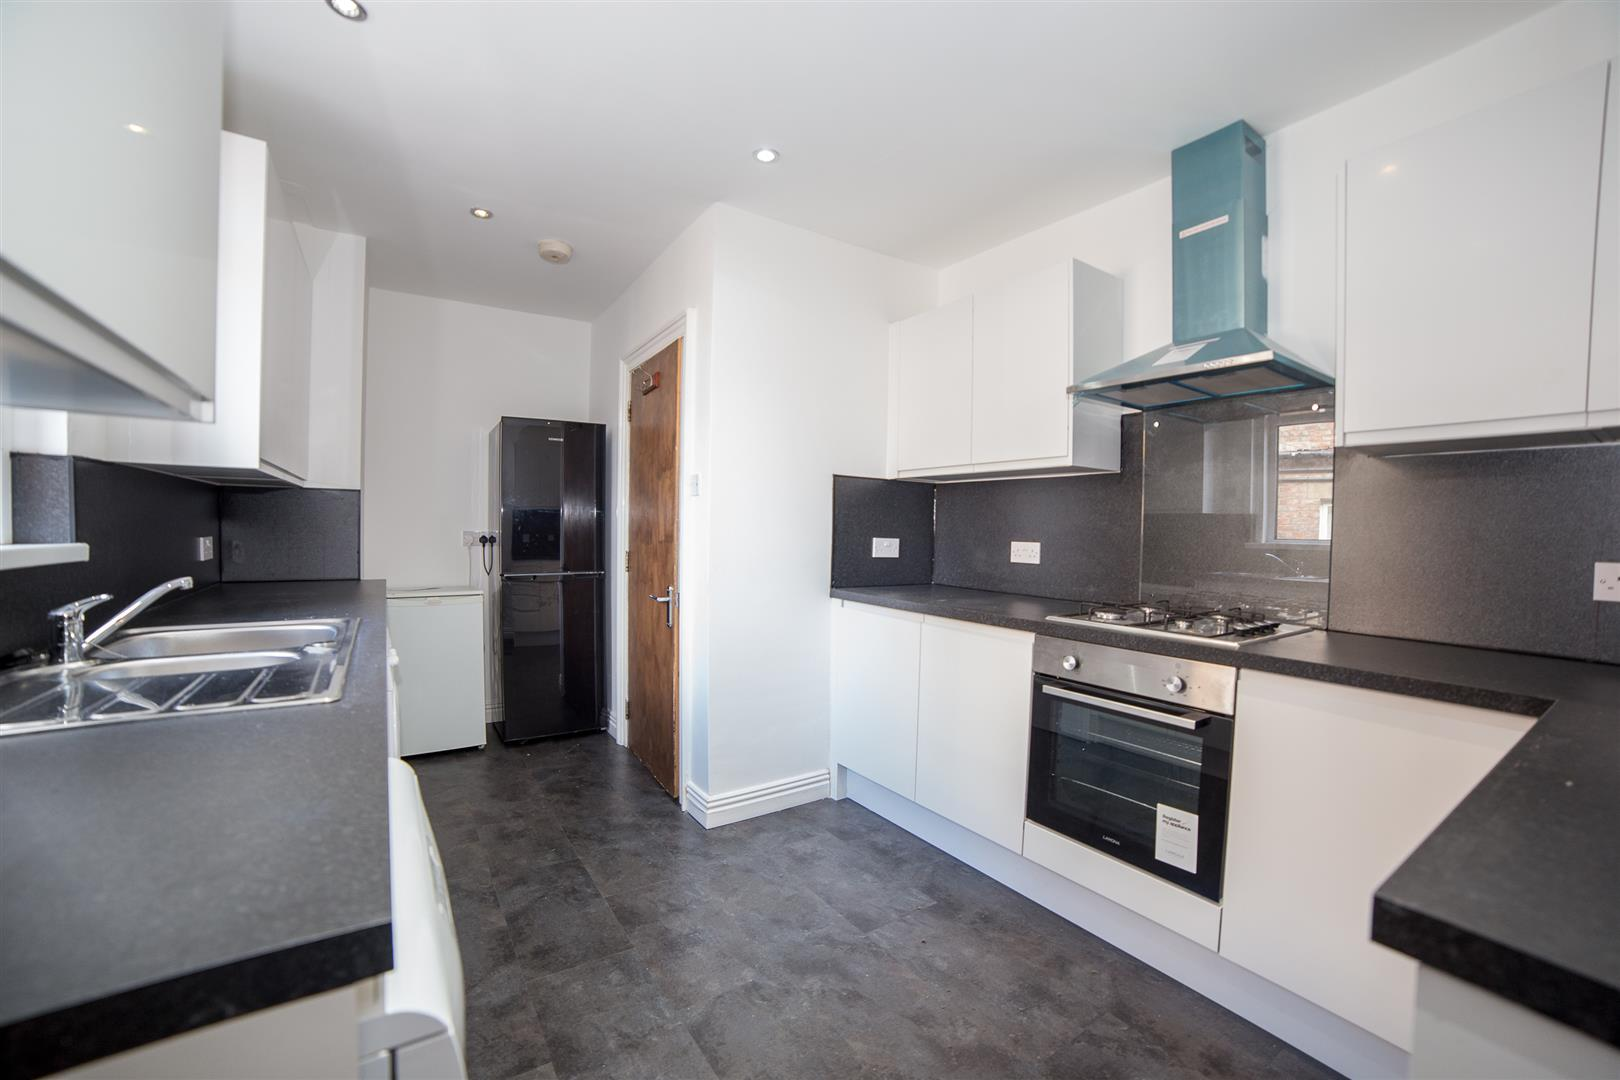 7 bed maisonette to rent in Newcastle Upon Tyne, NE2 1LB  - Property Image 2